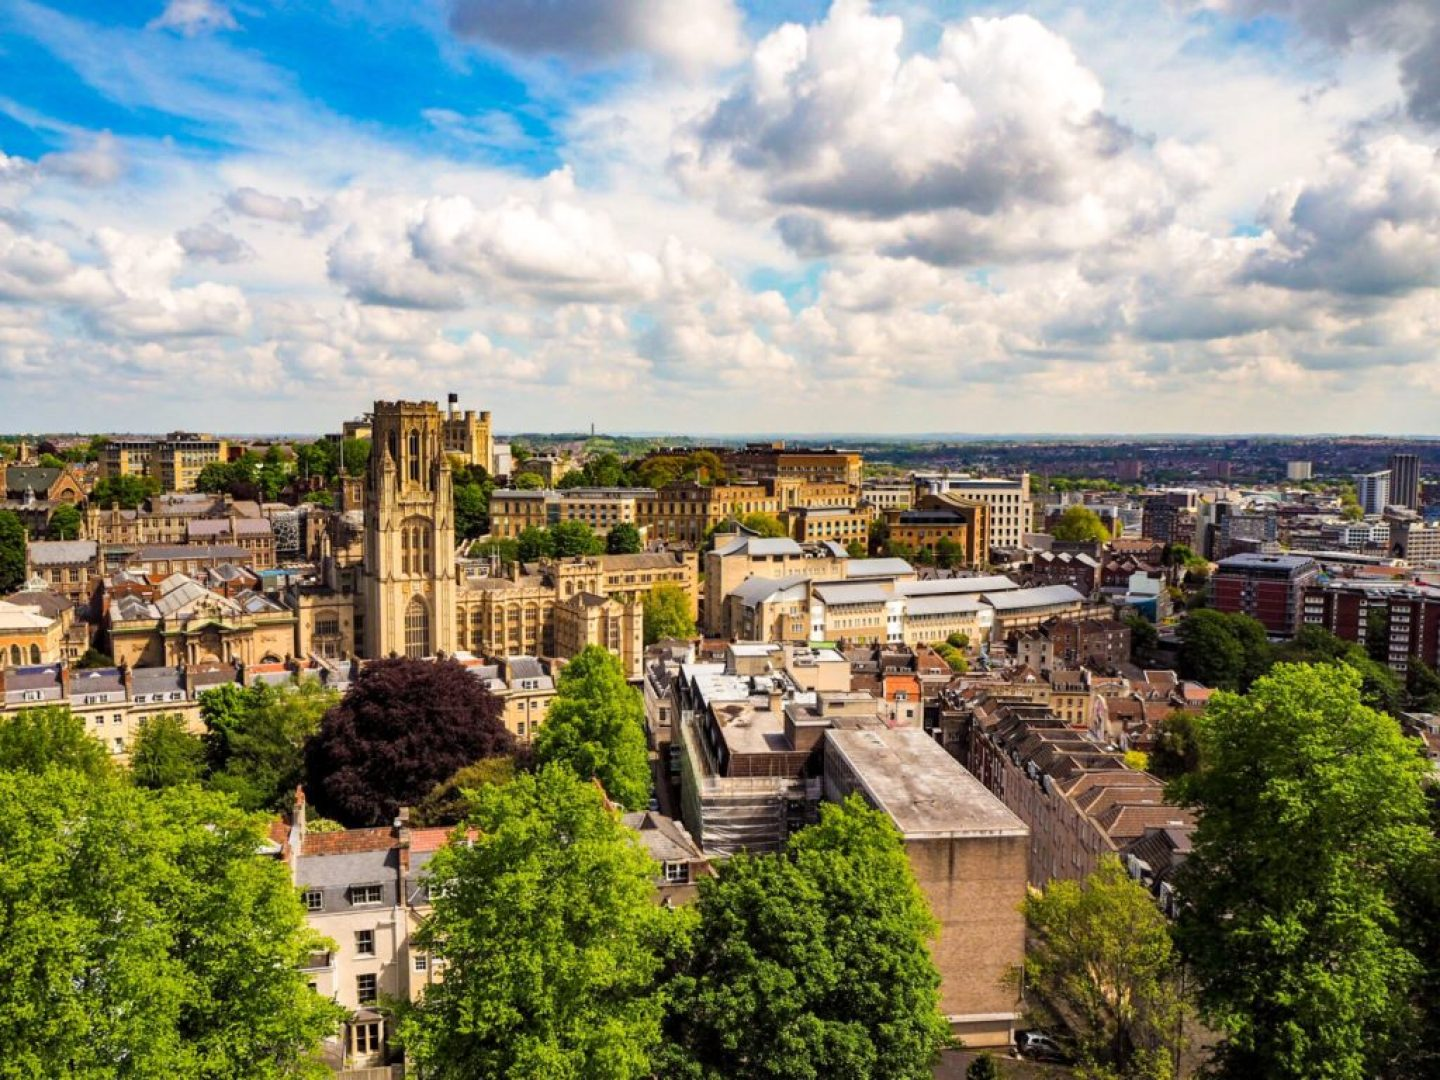 View from the top of Cabot Tower, Bristol